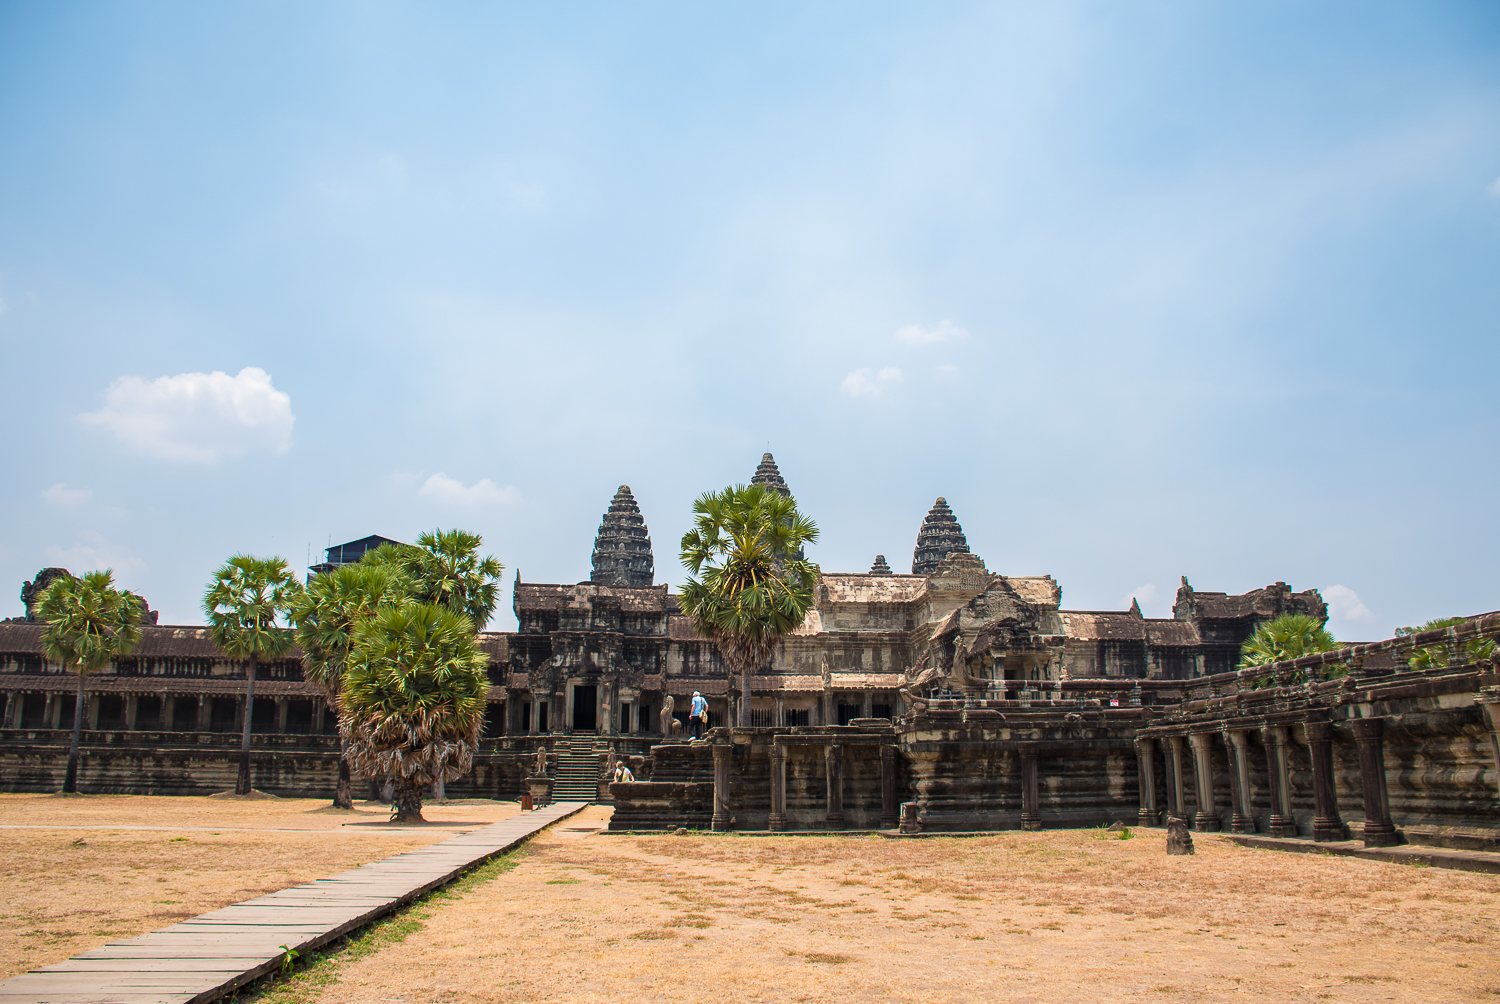 Angkor wat temple wonders of the world cambodia